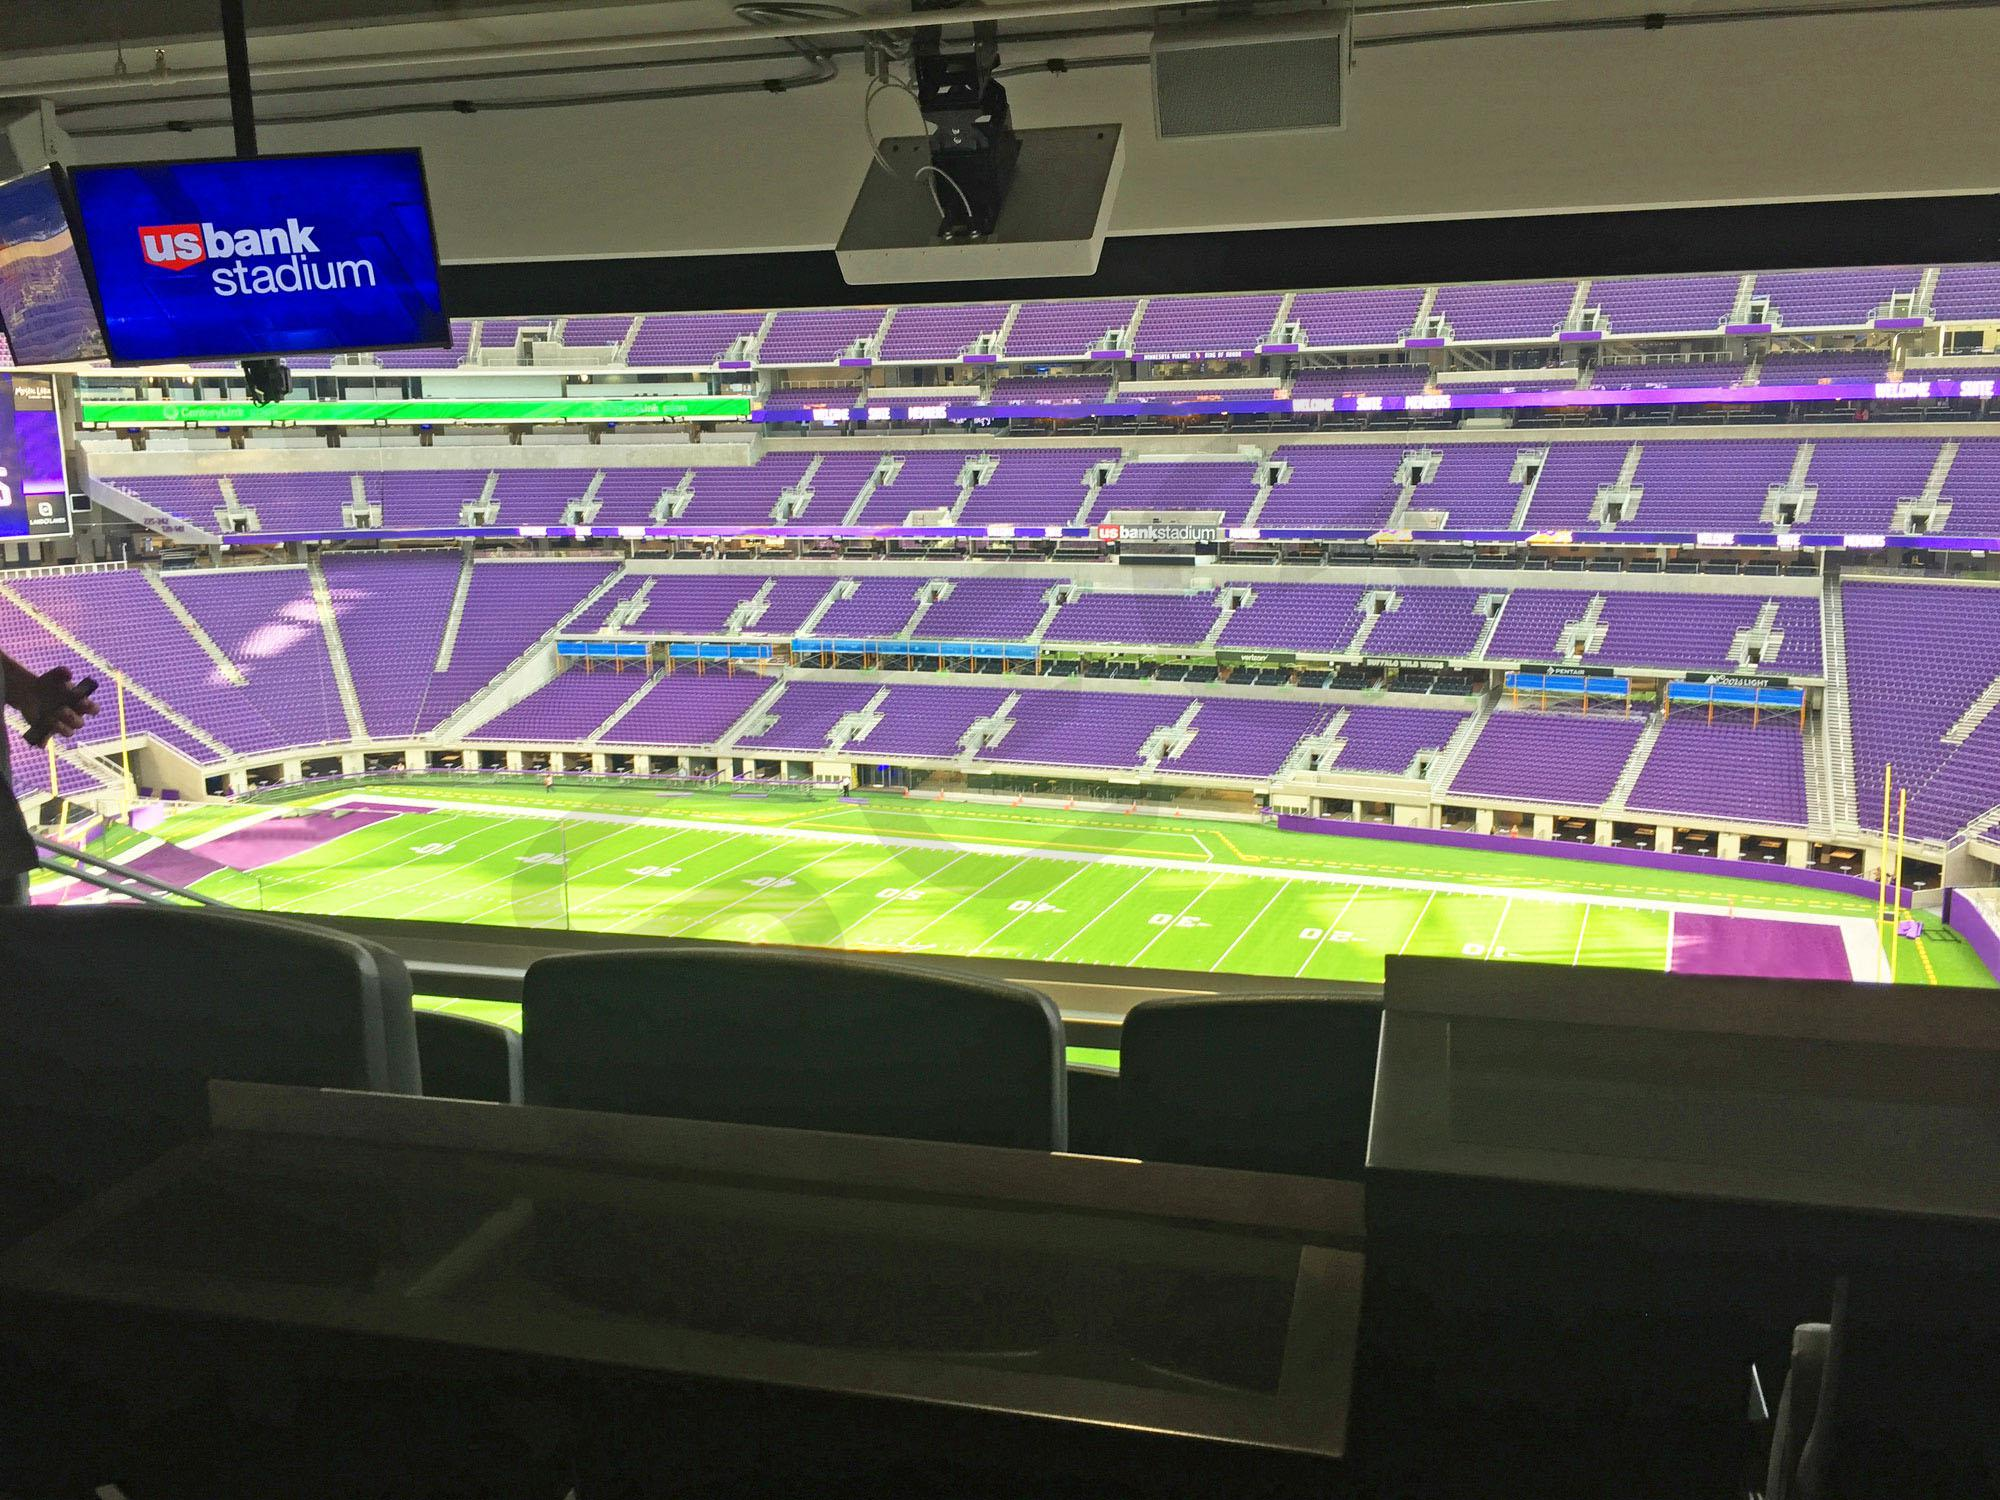 Field view from a Loft Suite